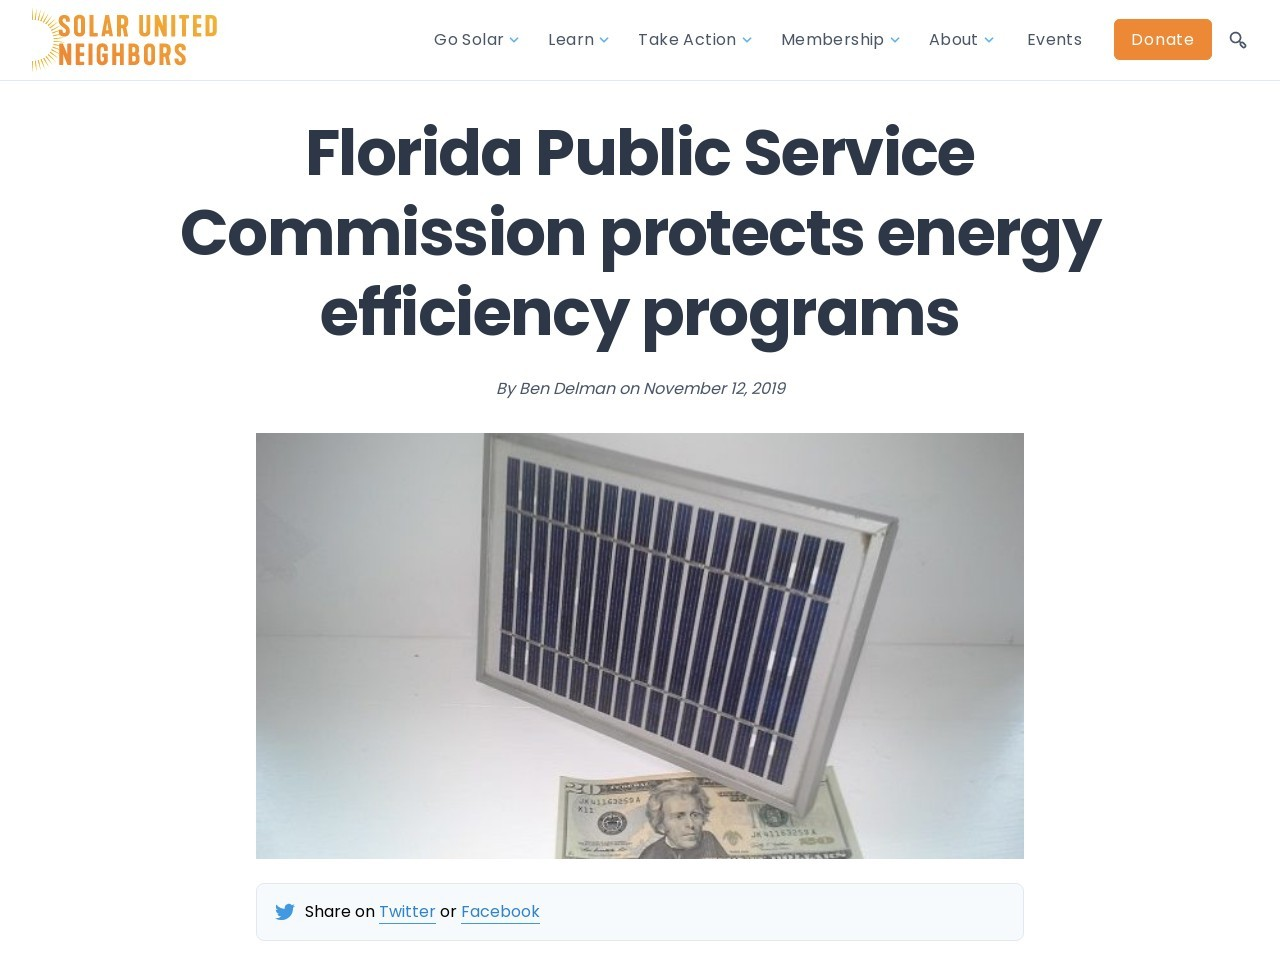 Florida Public Service Commission protects energy efficiency programs